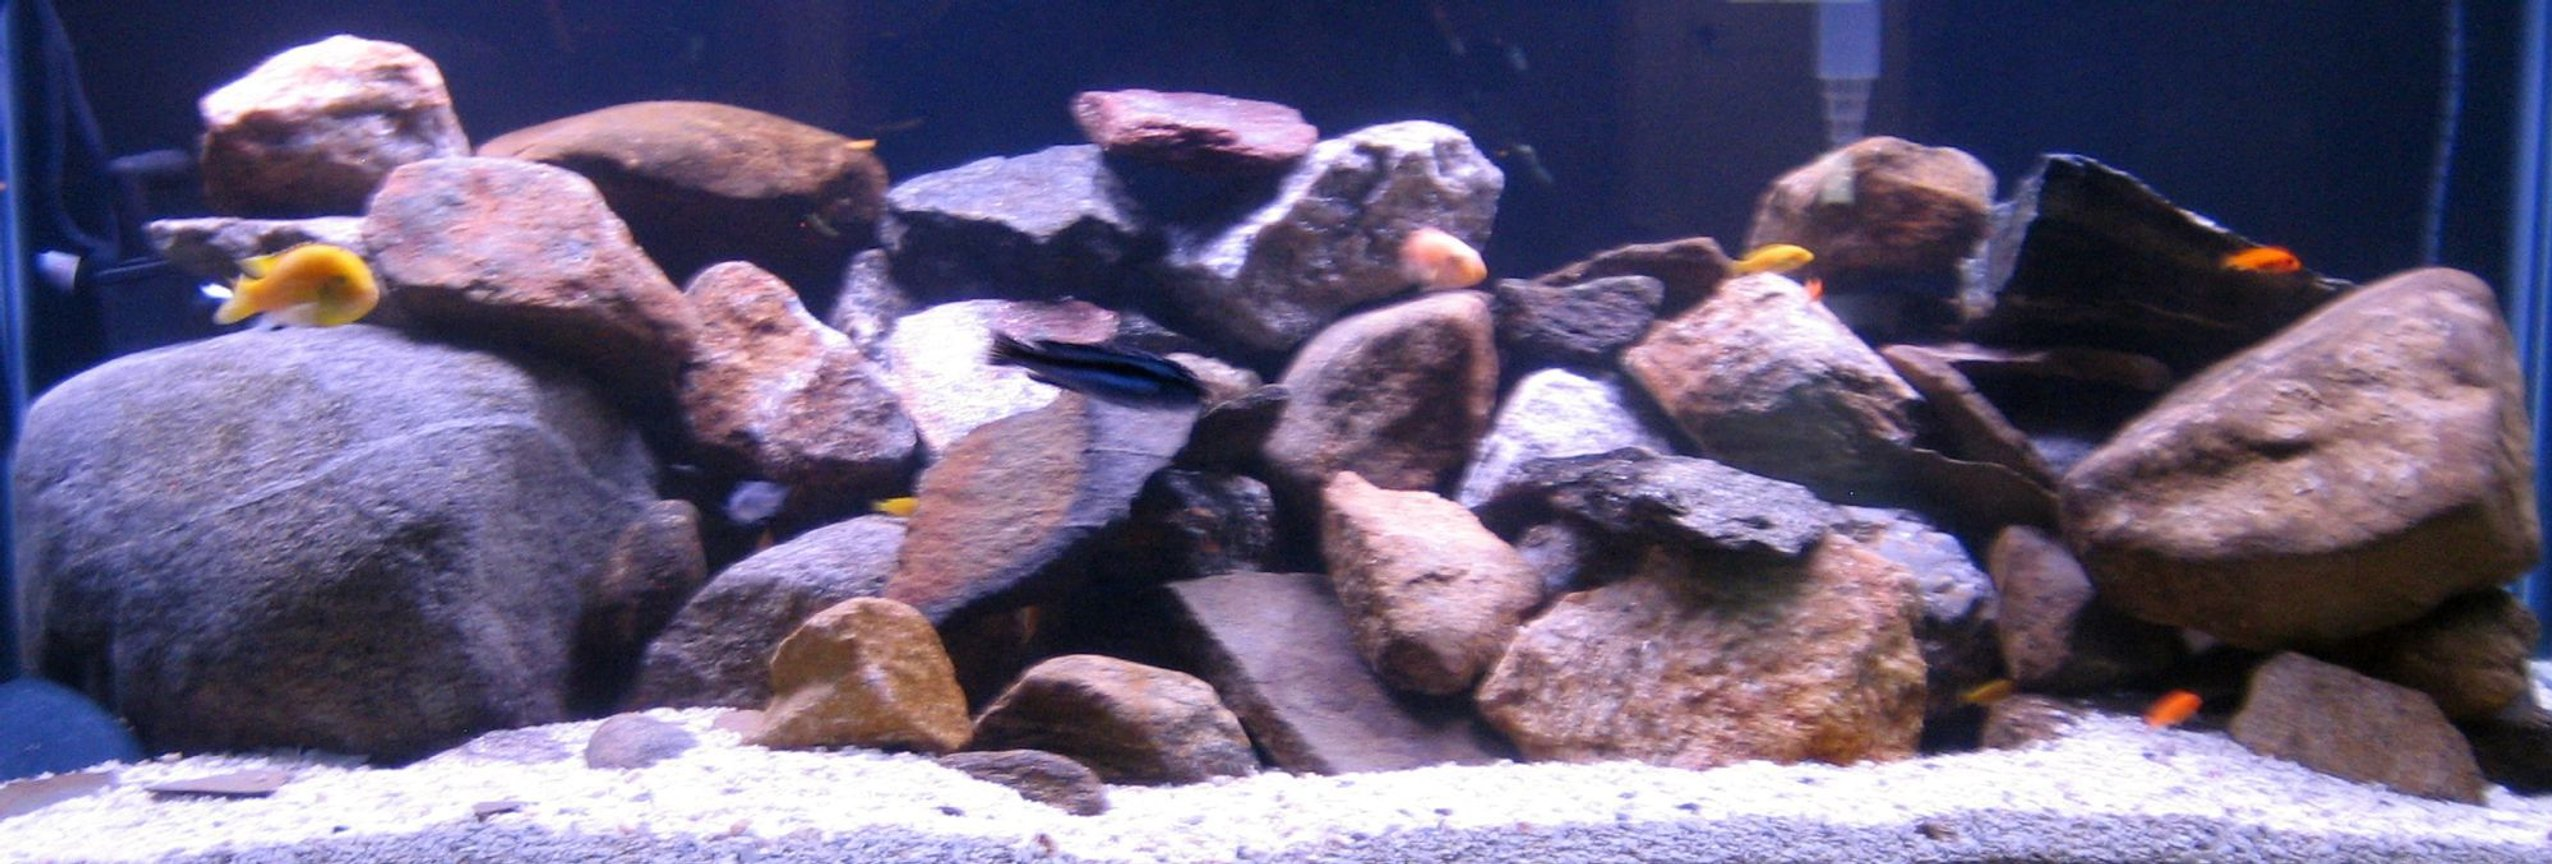 75 gallons freshwater fish tank (mostly fish and non-living decorations) - Malawi 75 Gallon